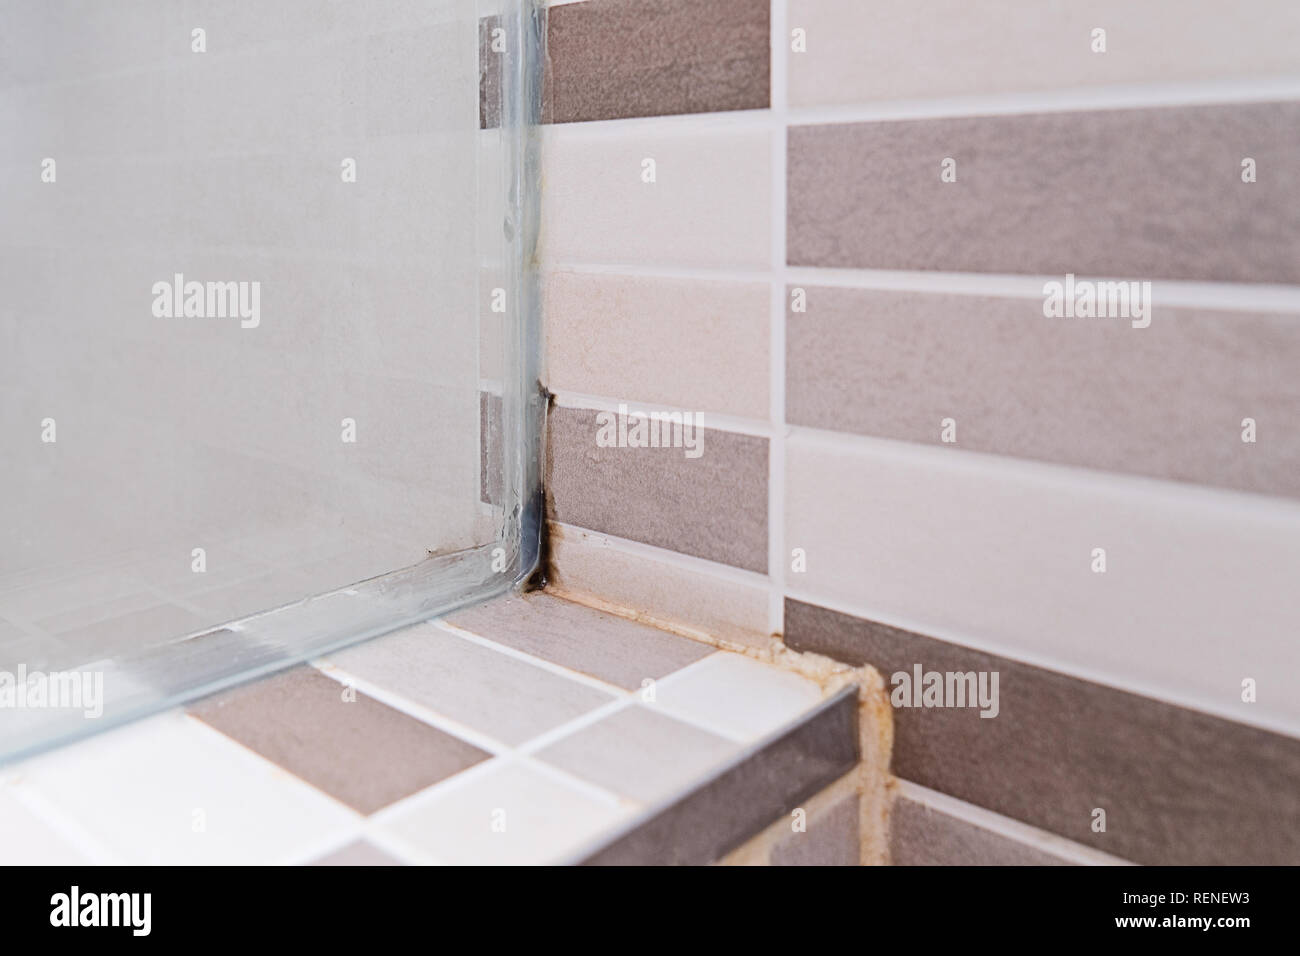 Black mold on tile in shower cabin. Poor ventilation, humidity, condensation cause fungus on the walls, close up. Unhygienic dirty mildew in bathroom  Stock Photo